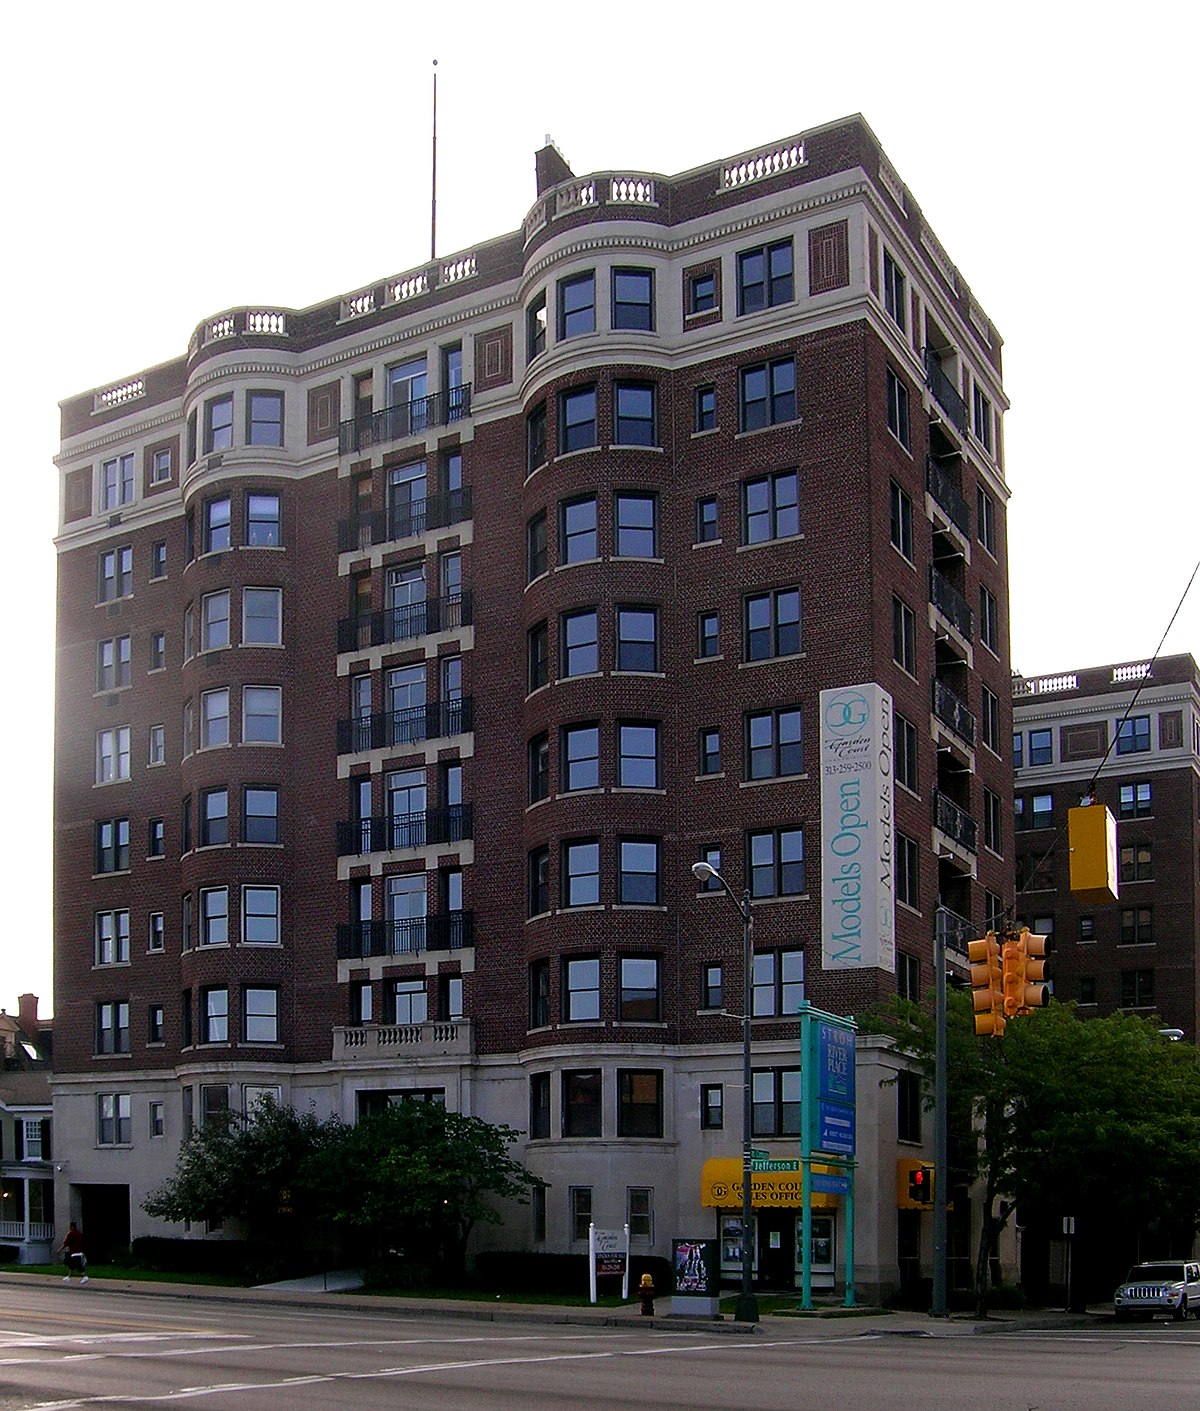 Apartment Flats: Garden Court Apartments (Detroit, Michigan)